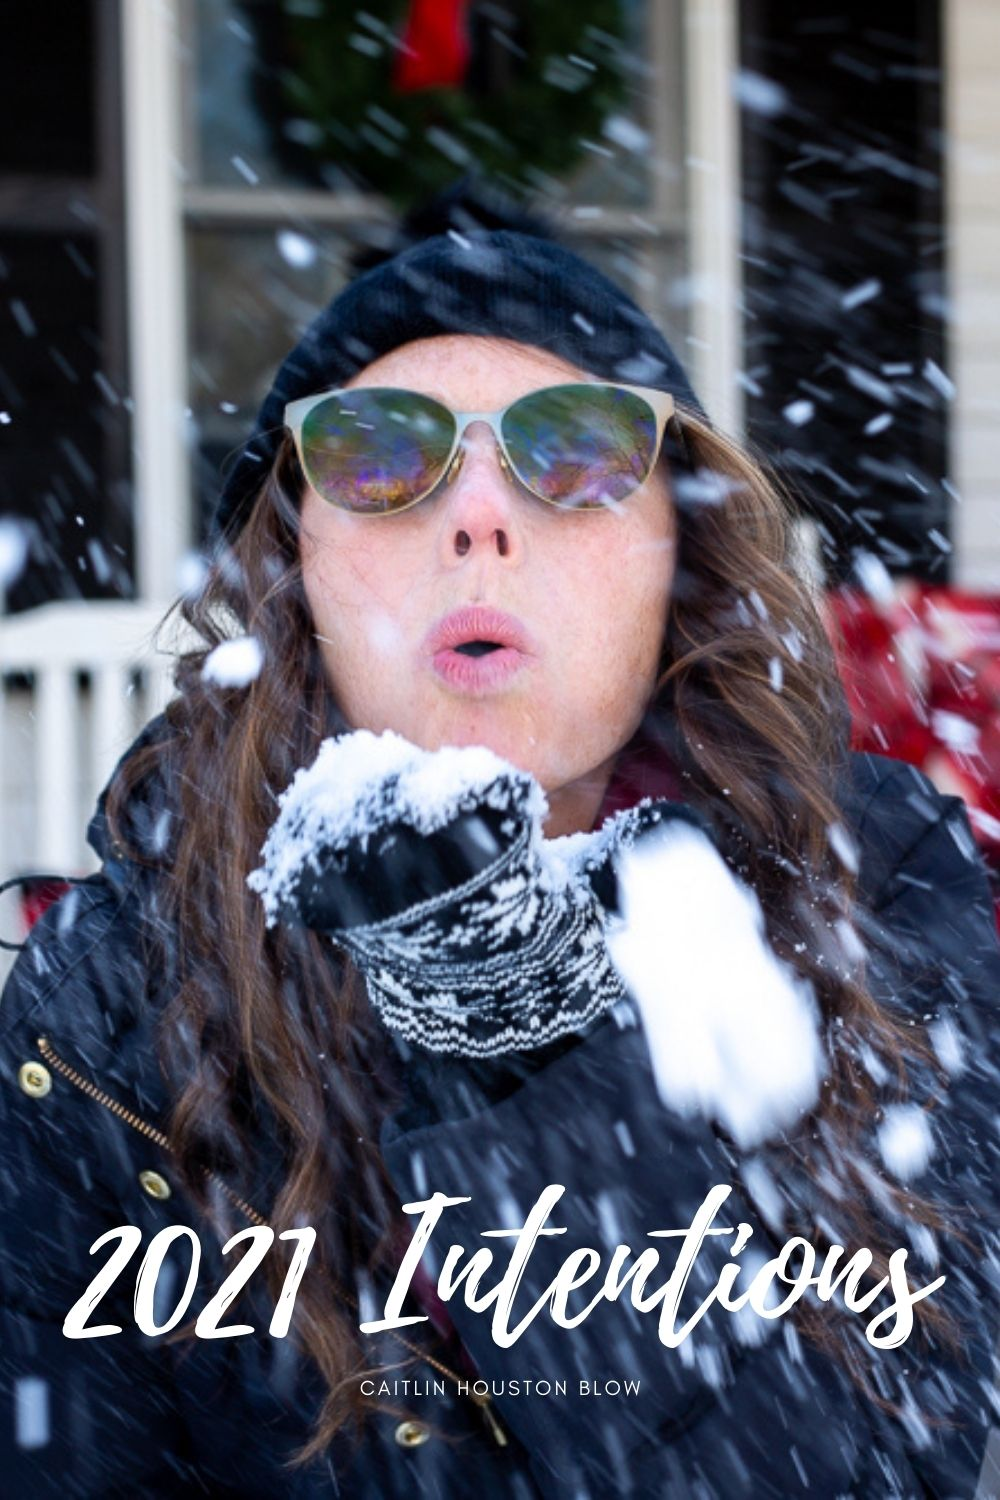 woman blowing snow at camera setting 2021 intentions